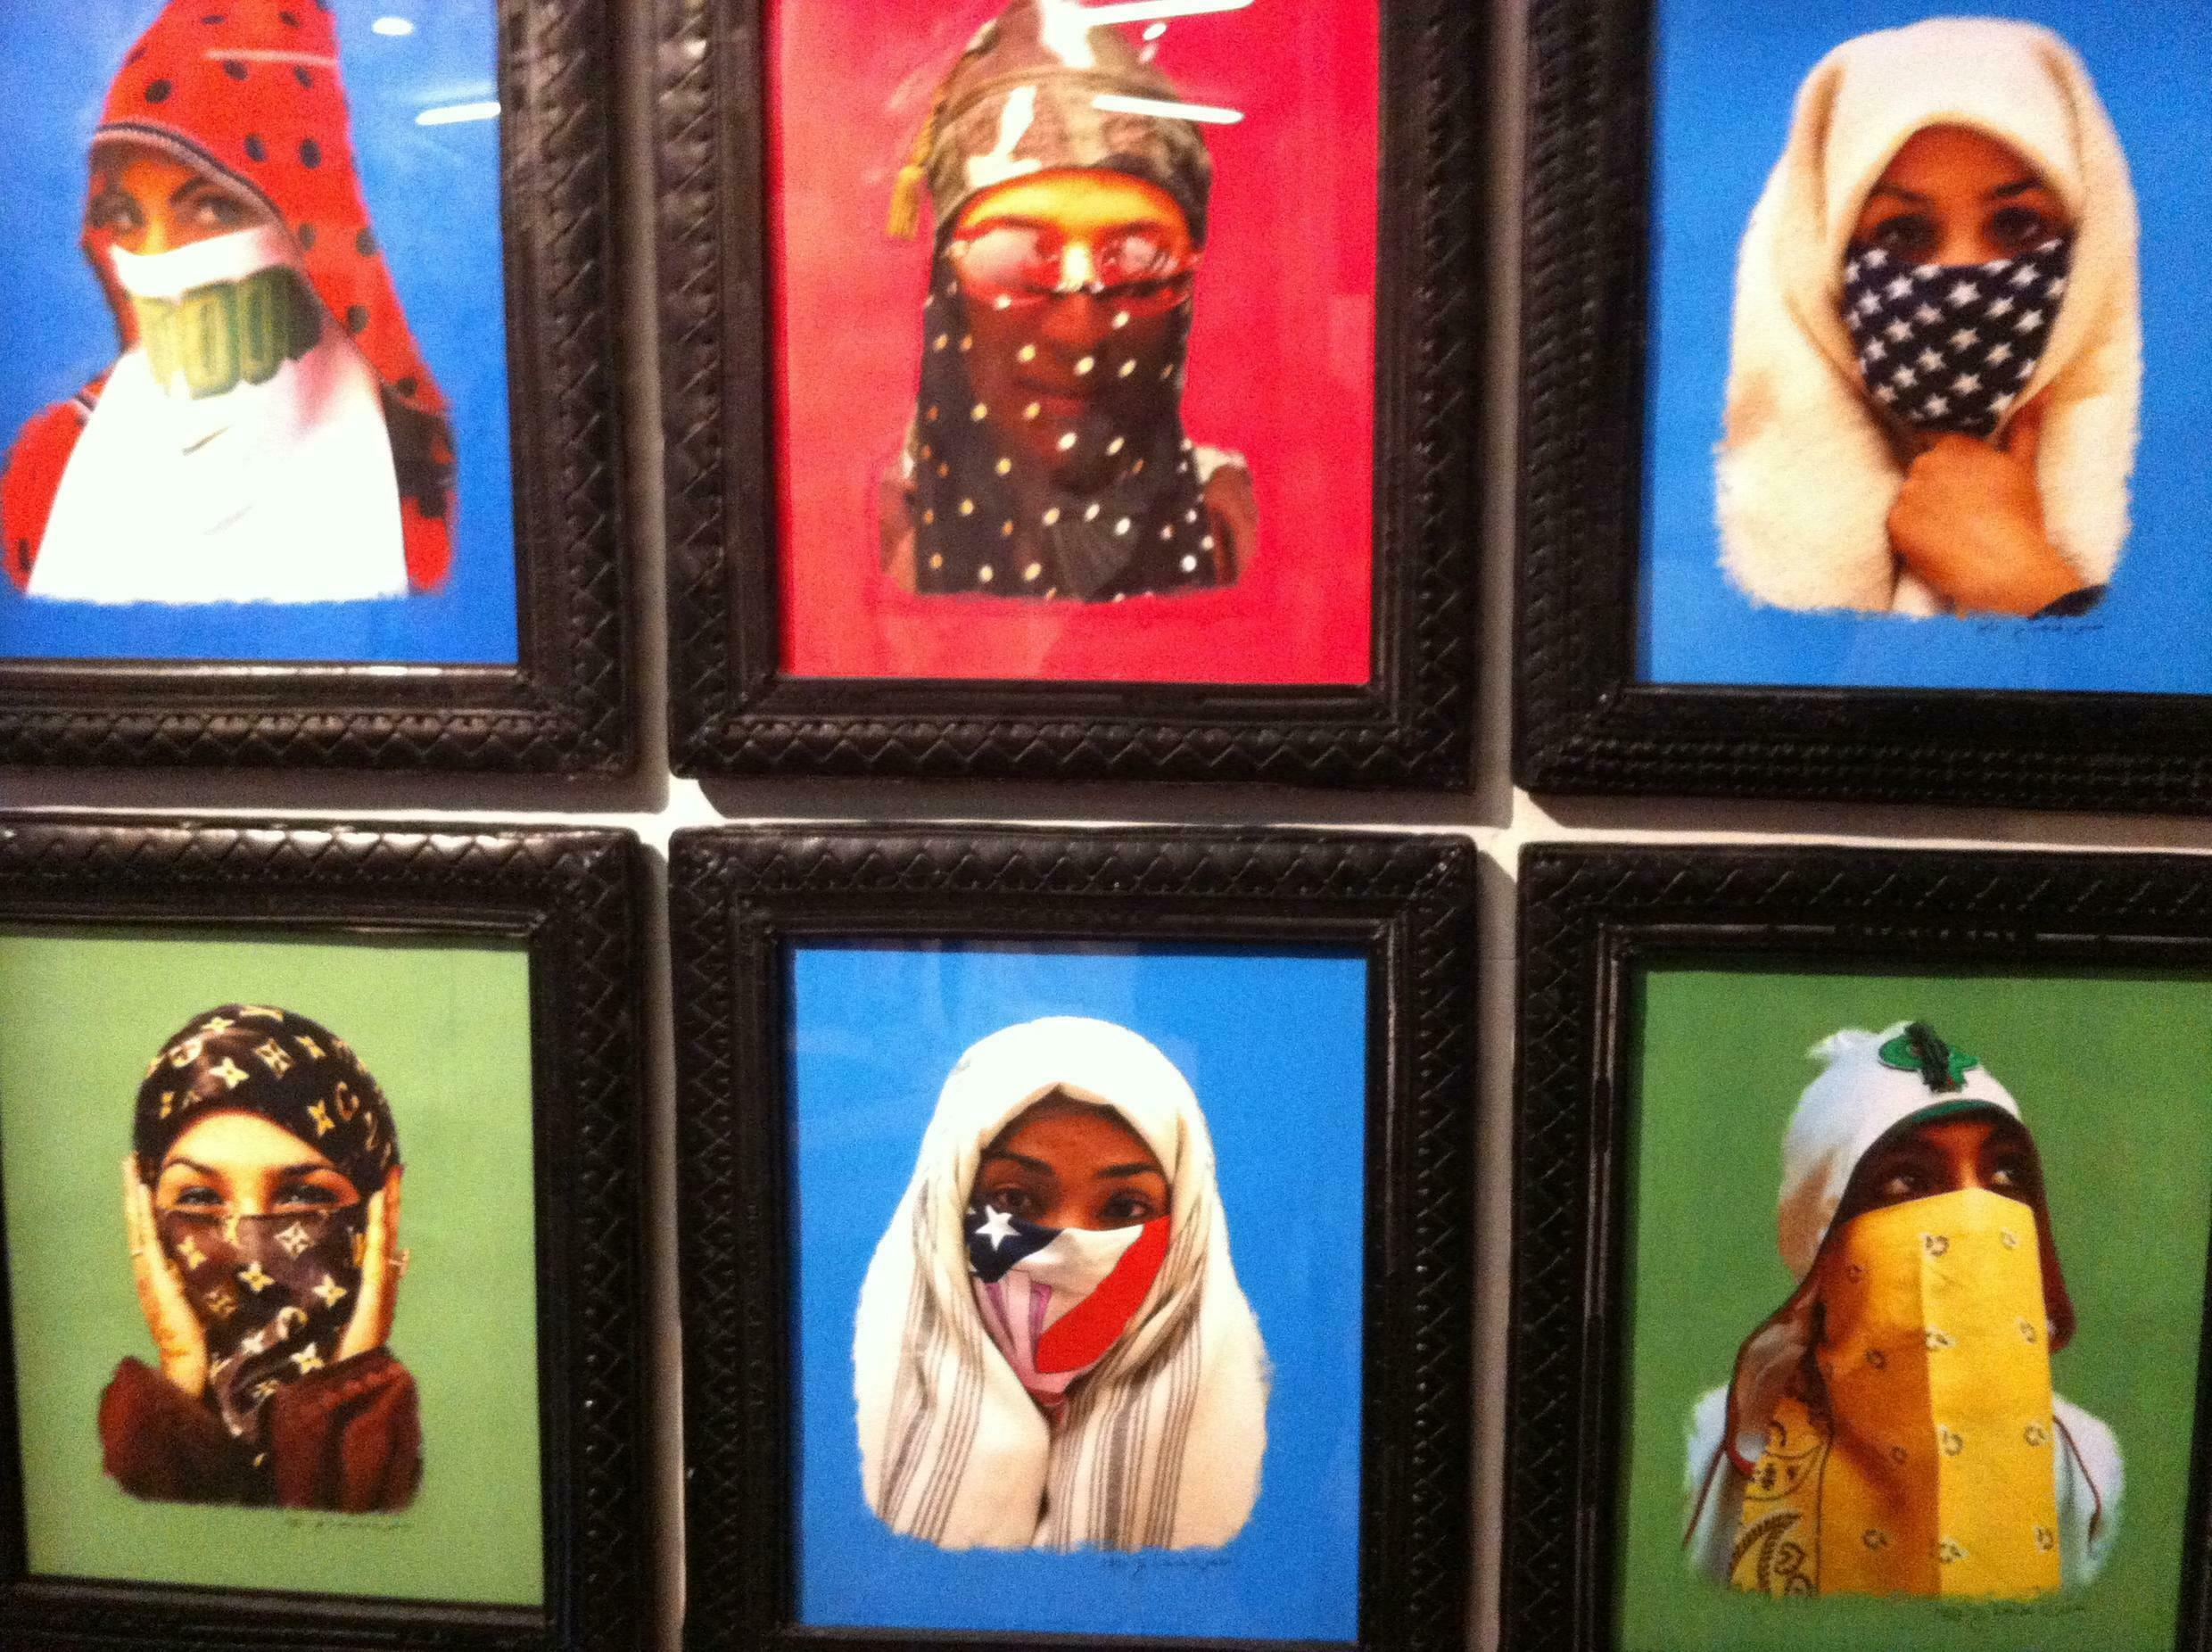 Photographies numériques peintes (Maroc, 2010) de Hassan Hajjaj , exposées au MuCEM : « Hayat In Veil In Pink – Blue Camo Veil In Blue – Y Bandana Veil In Green – Puma Veil in Blue – Peace in Blue – Just Do It In Blue – Stars Veil In Blue – Saida In Green